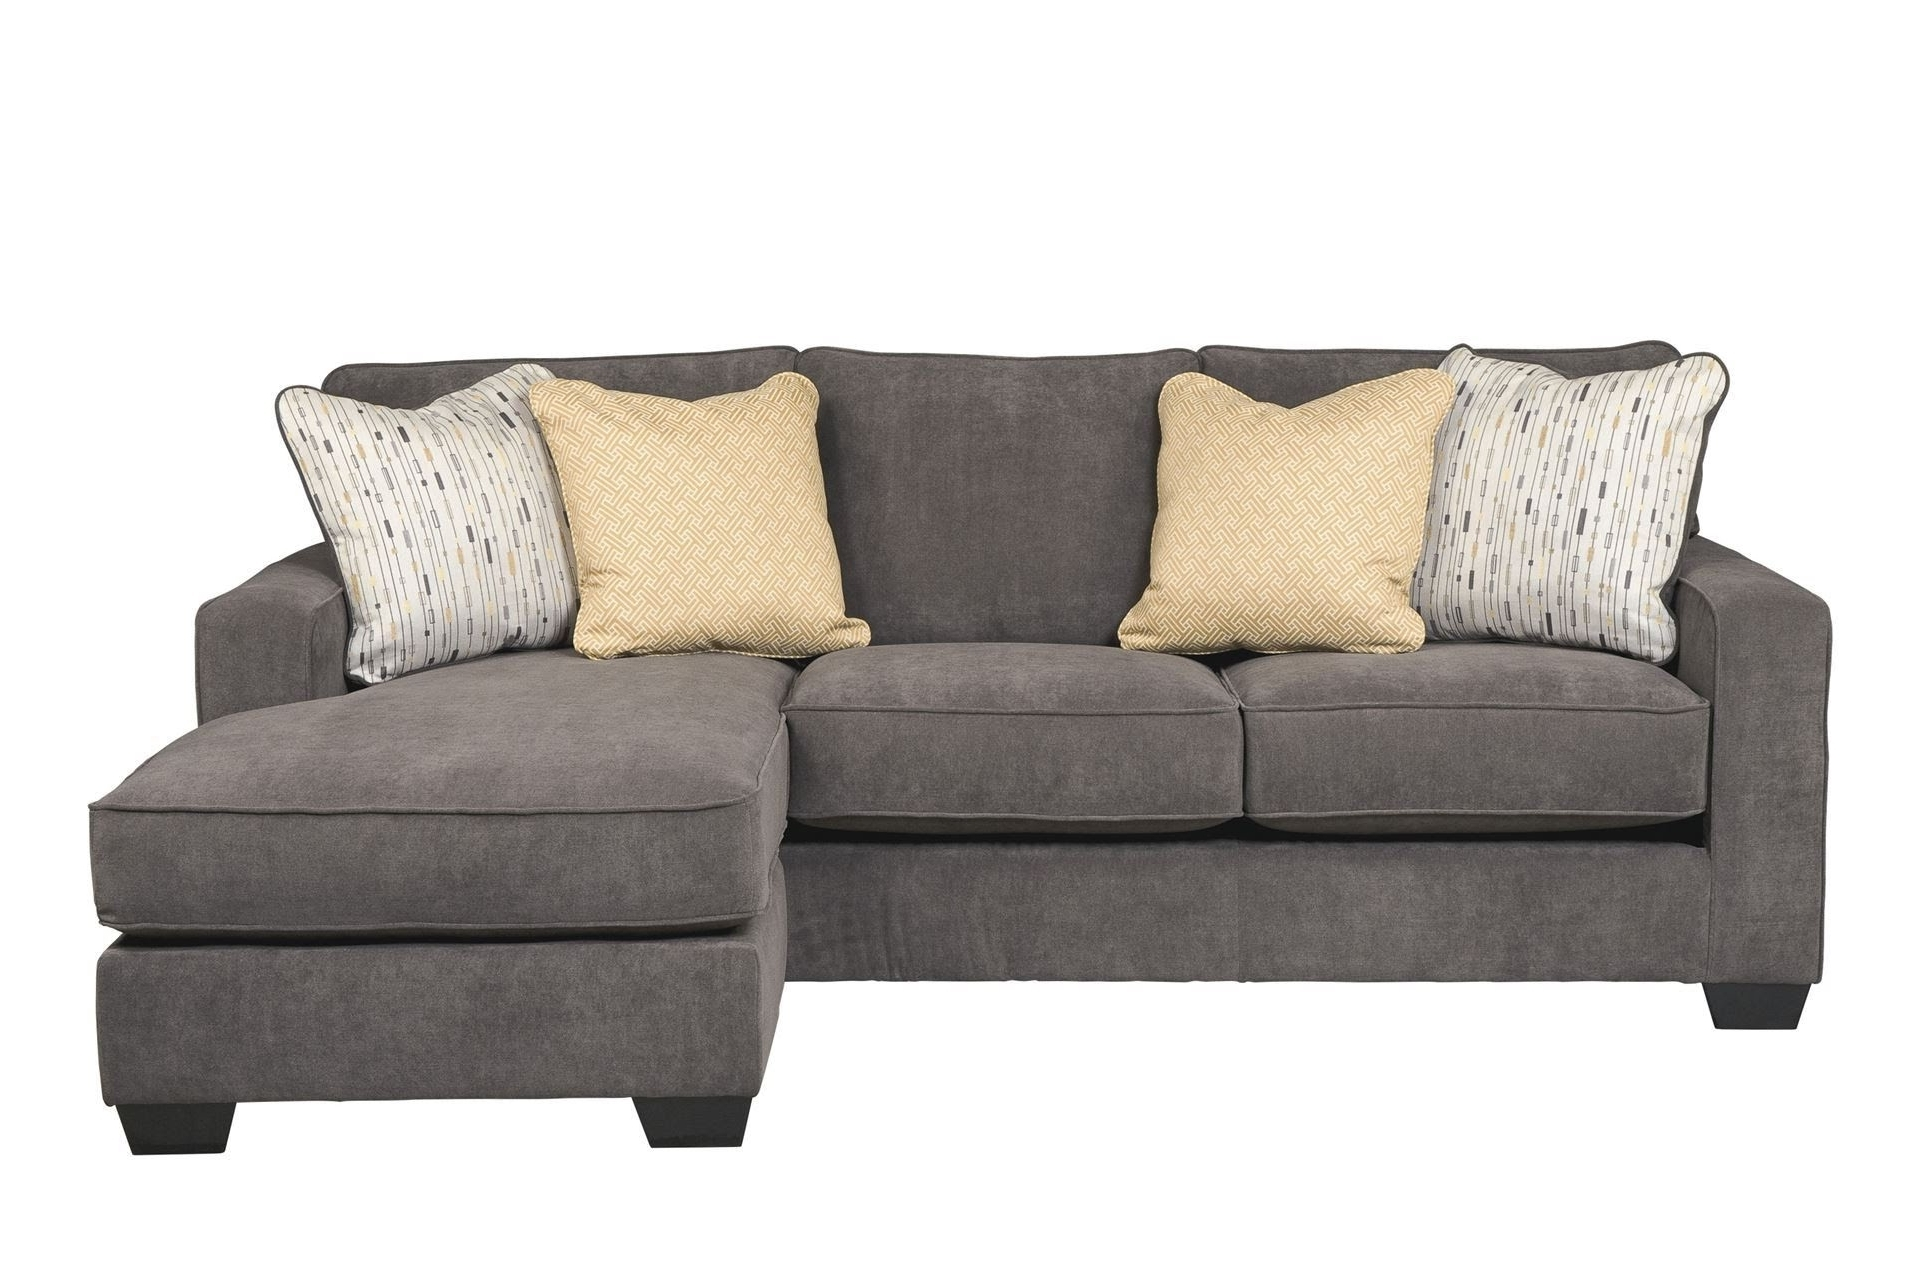 Interesting Couch With Chaise Lounge Ideas – Youtube Throughout Current Couch Chaise Lounges (Gallery 6 of 15)